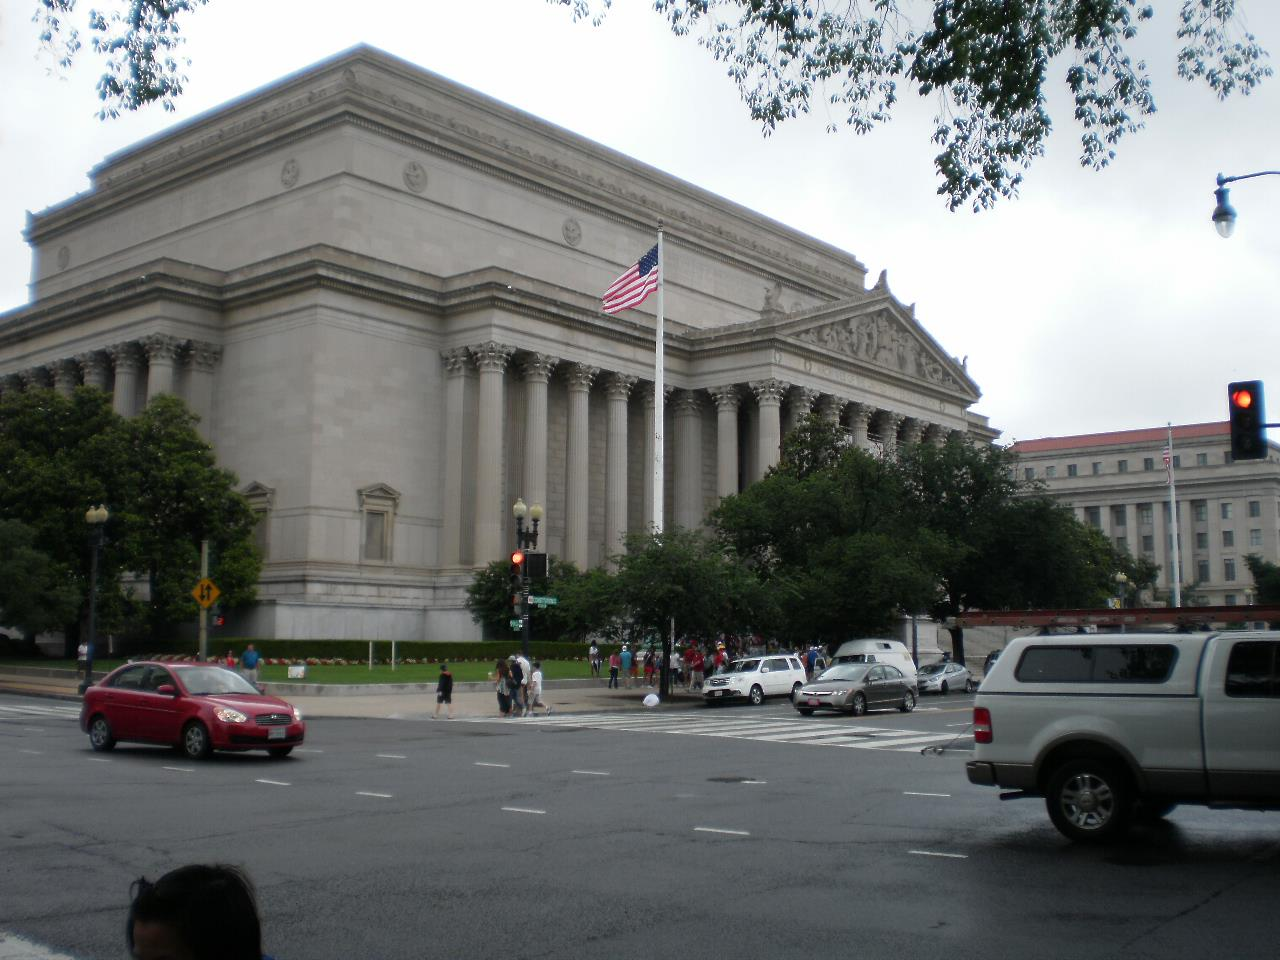 A picture of the National Archives building in Washington D.C. that Sarah took while applying for her visa in Spain.